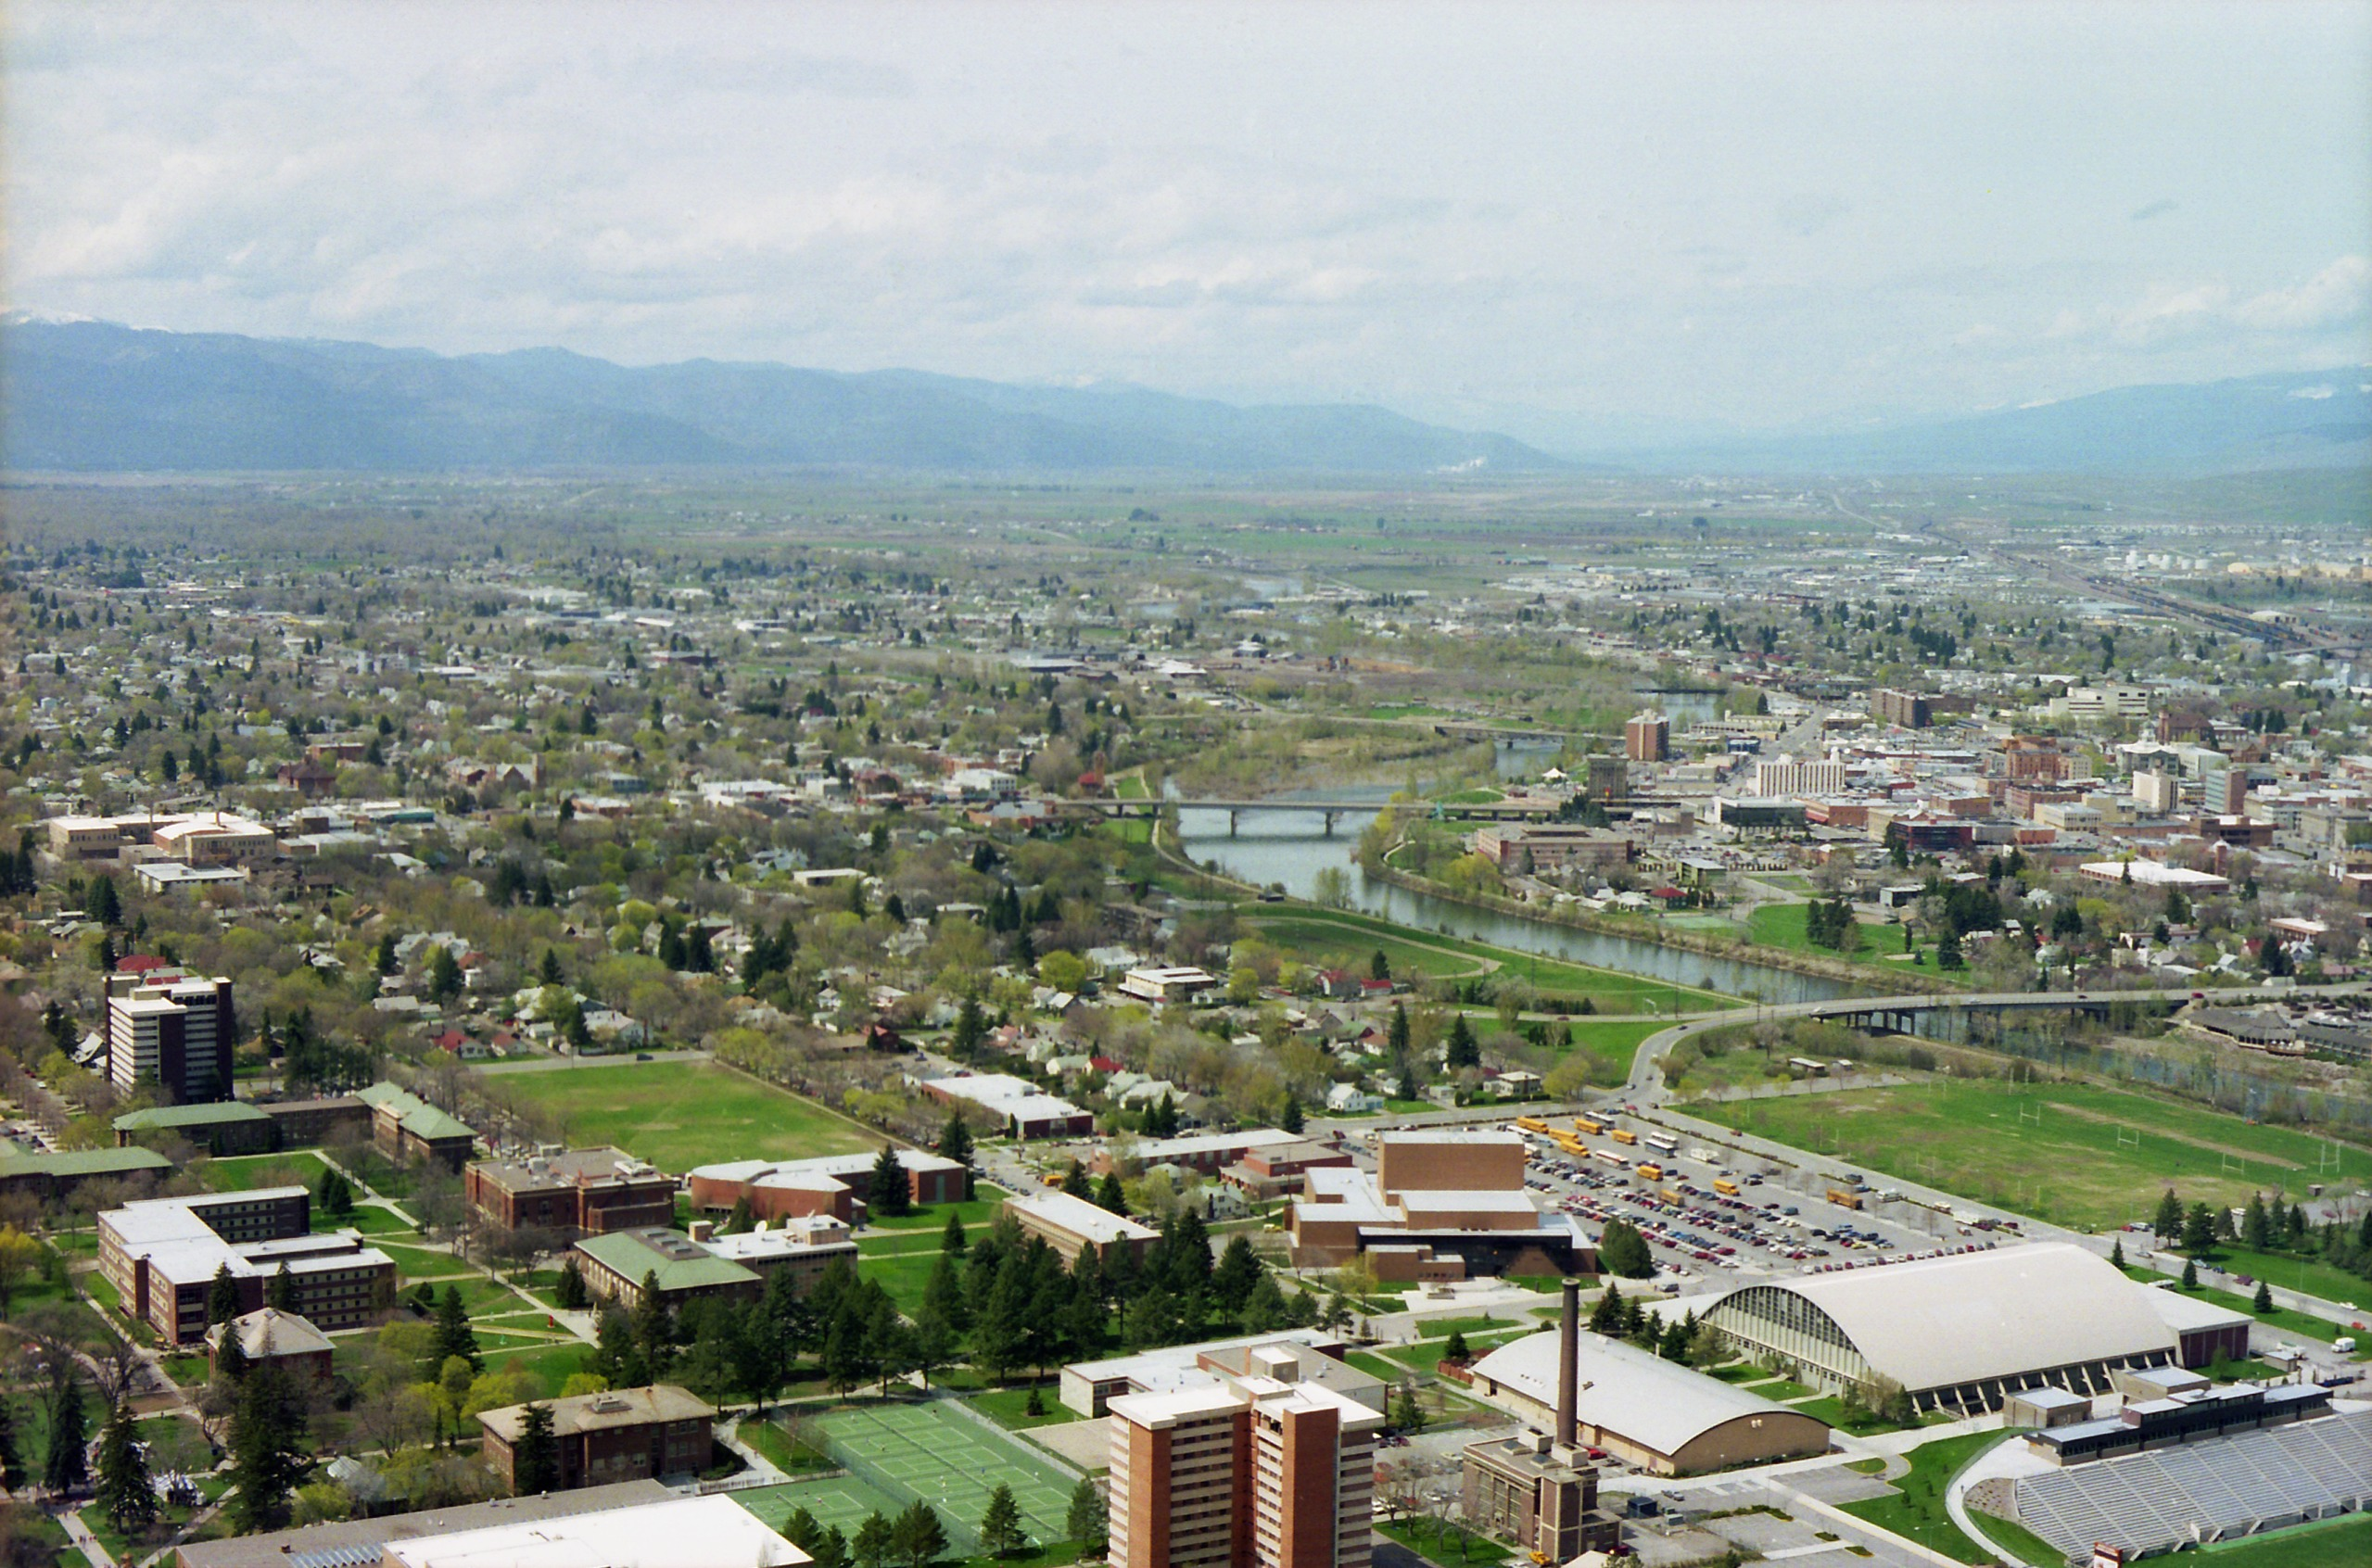 Missoula Montana has something for everyone who loves great